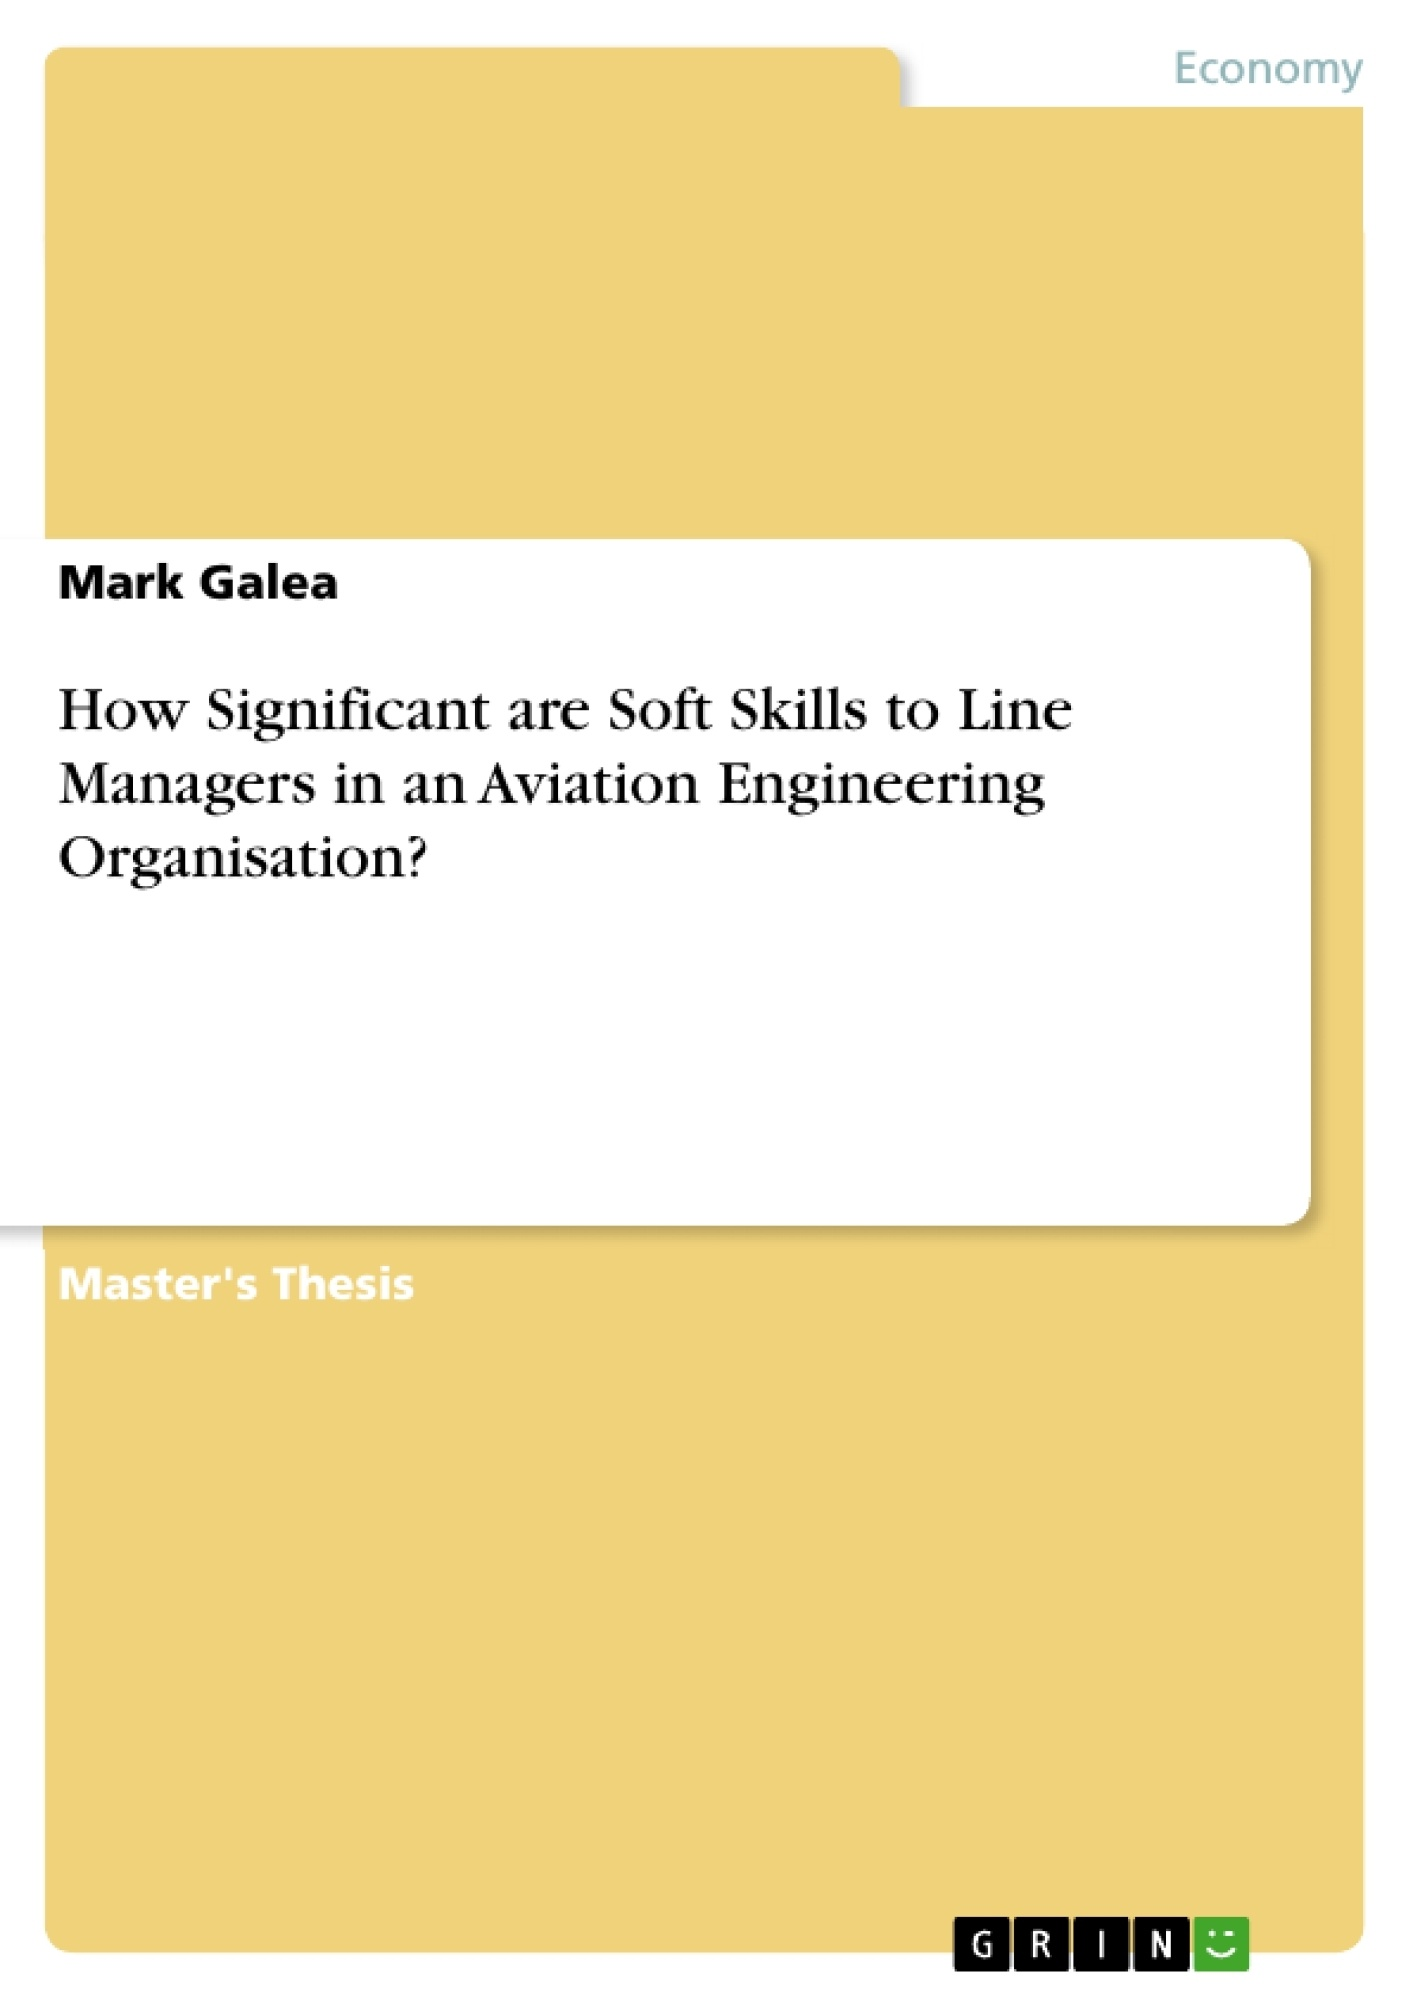 Title: How Significant are Soft Skills to Line Managers in an Aviation Engineering Organisation?